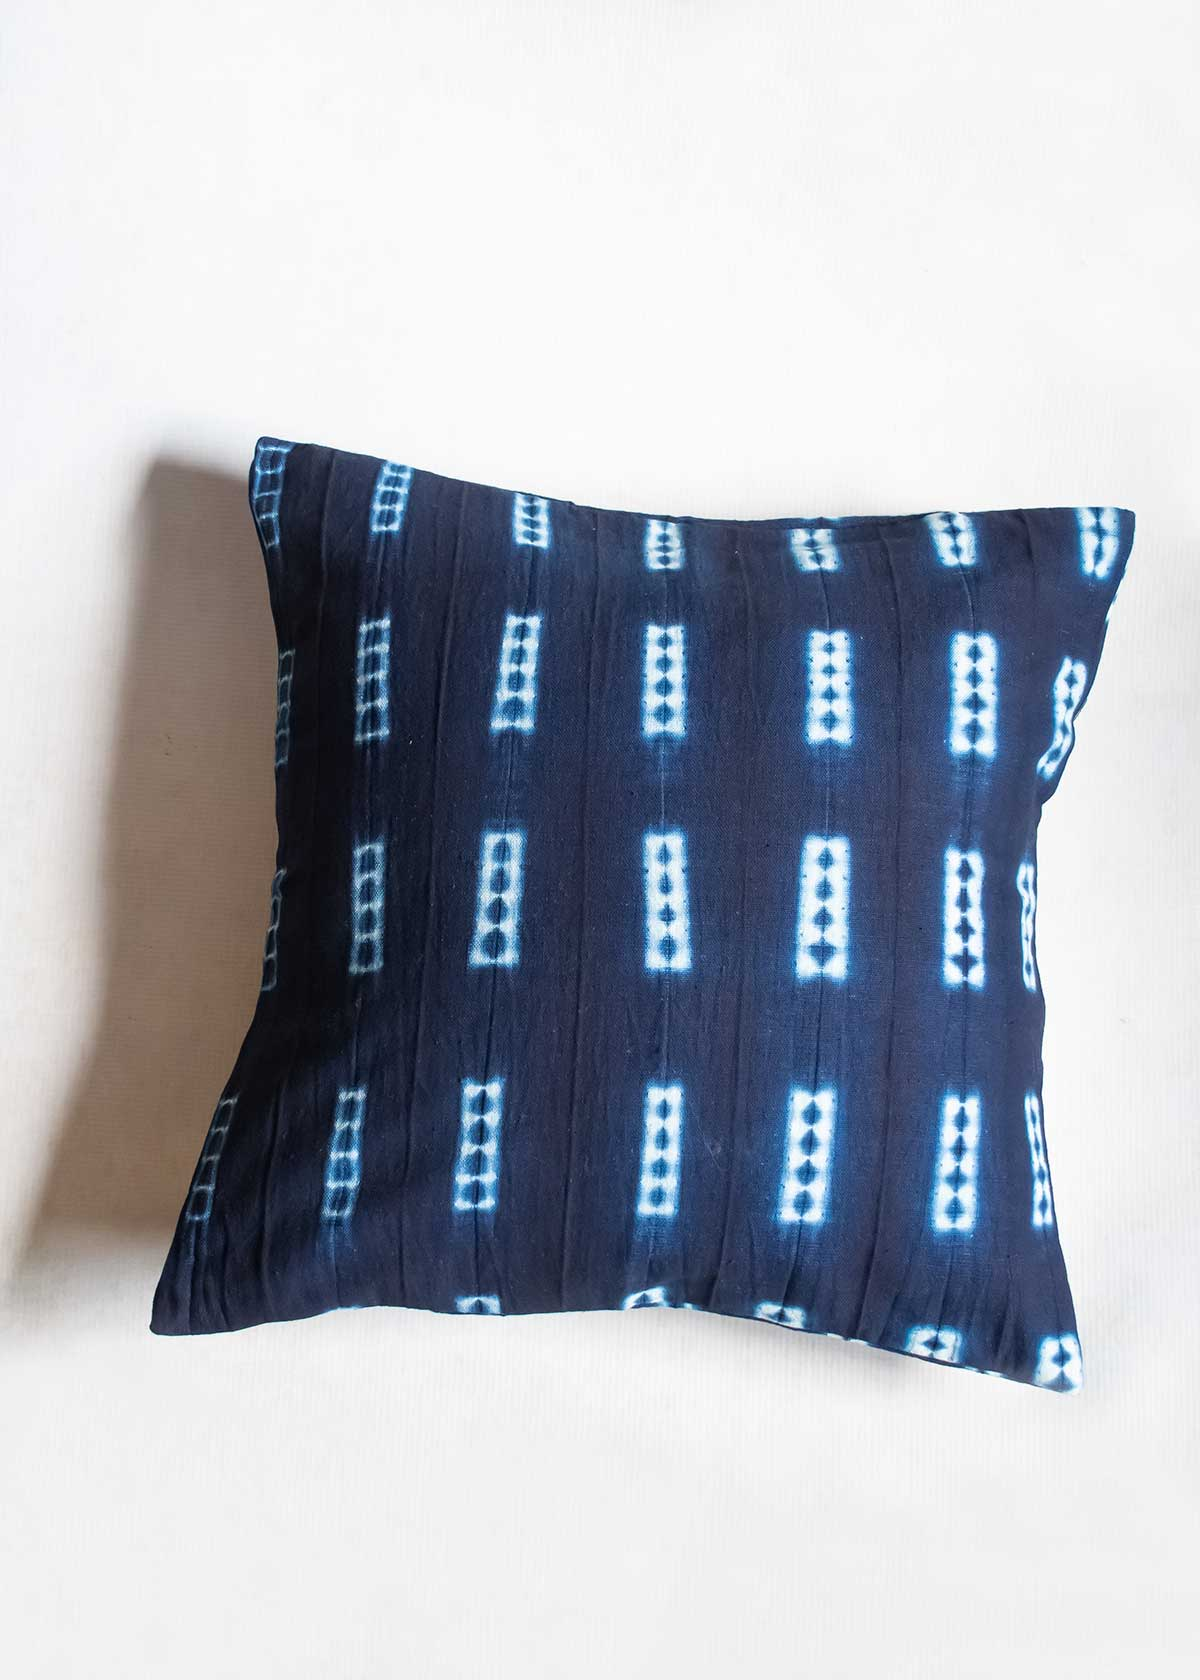 Ndomo Mud Cloth Pillow, handmade in Mali